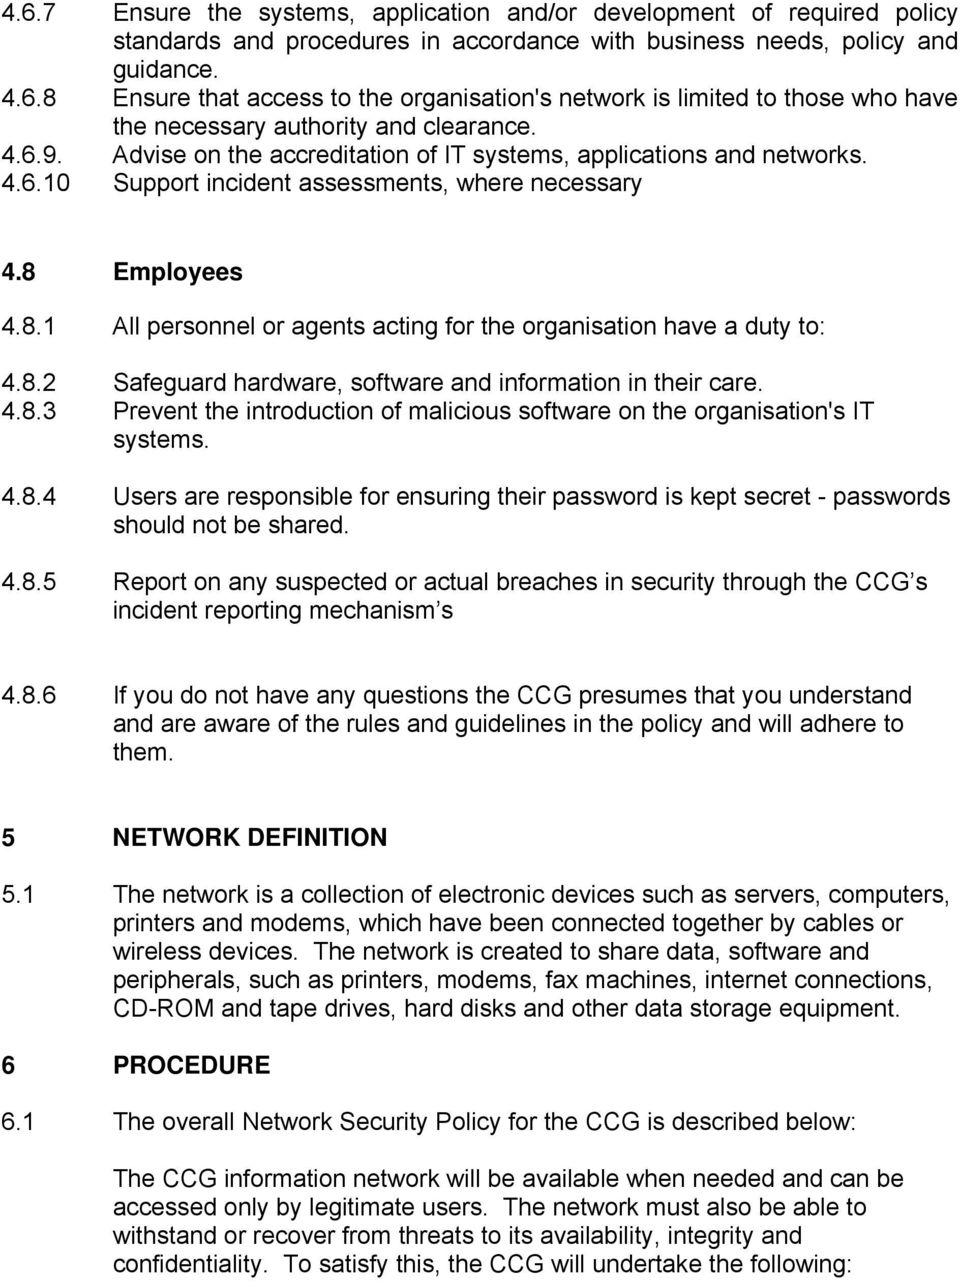 Employees 4.8.1 All personnel or agents acting for the organisation have a duty to: 4.8.2 Safeguard hardware, software and information in their care. 4.8.3 Prevent the introduction of malicious software on the organisation's IT systems.